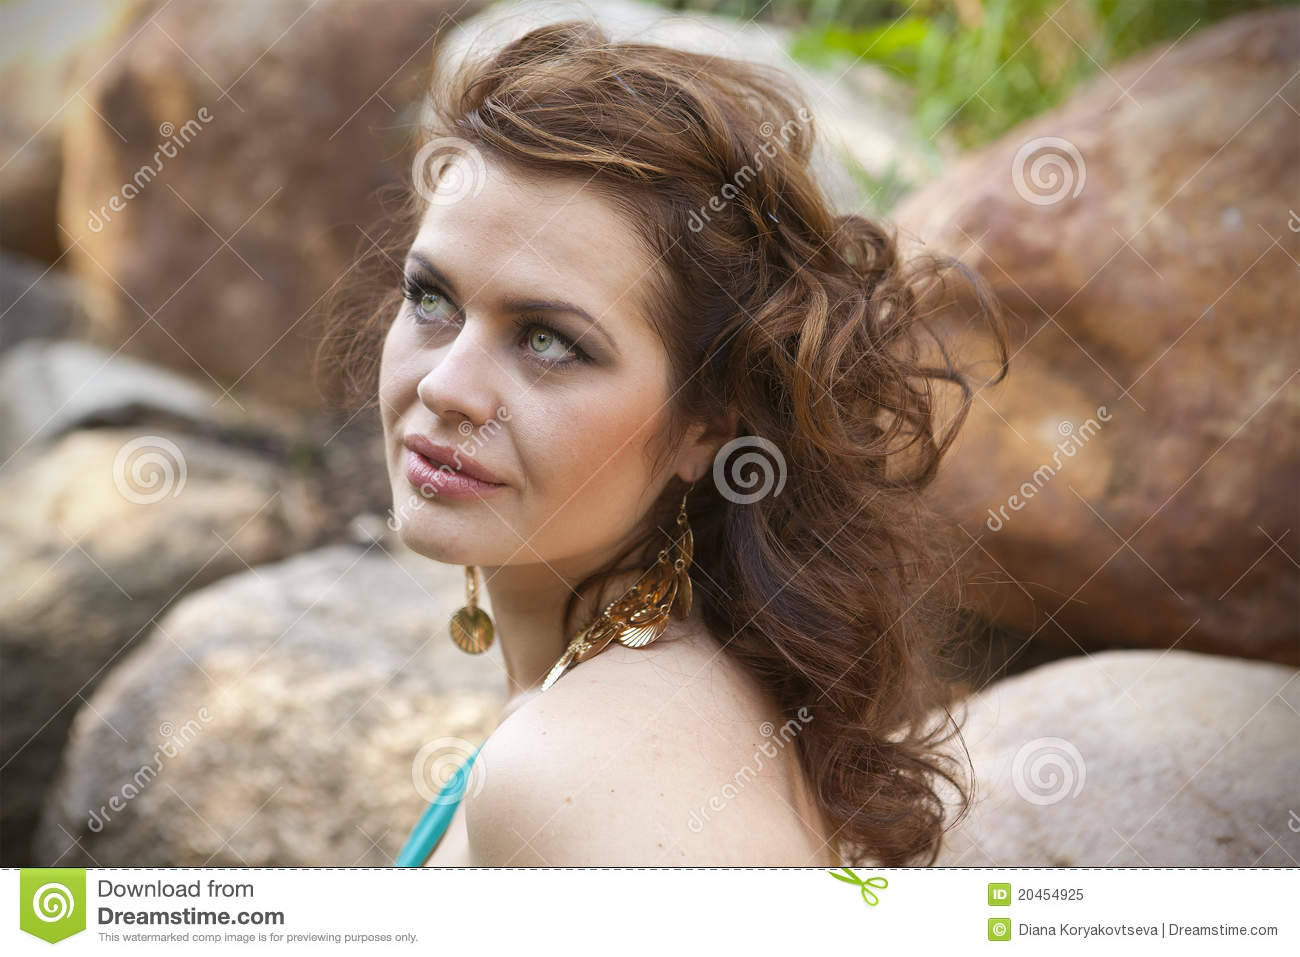 extraordinarily beautiful girl in a blue dress stock image